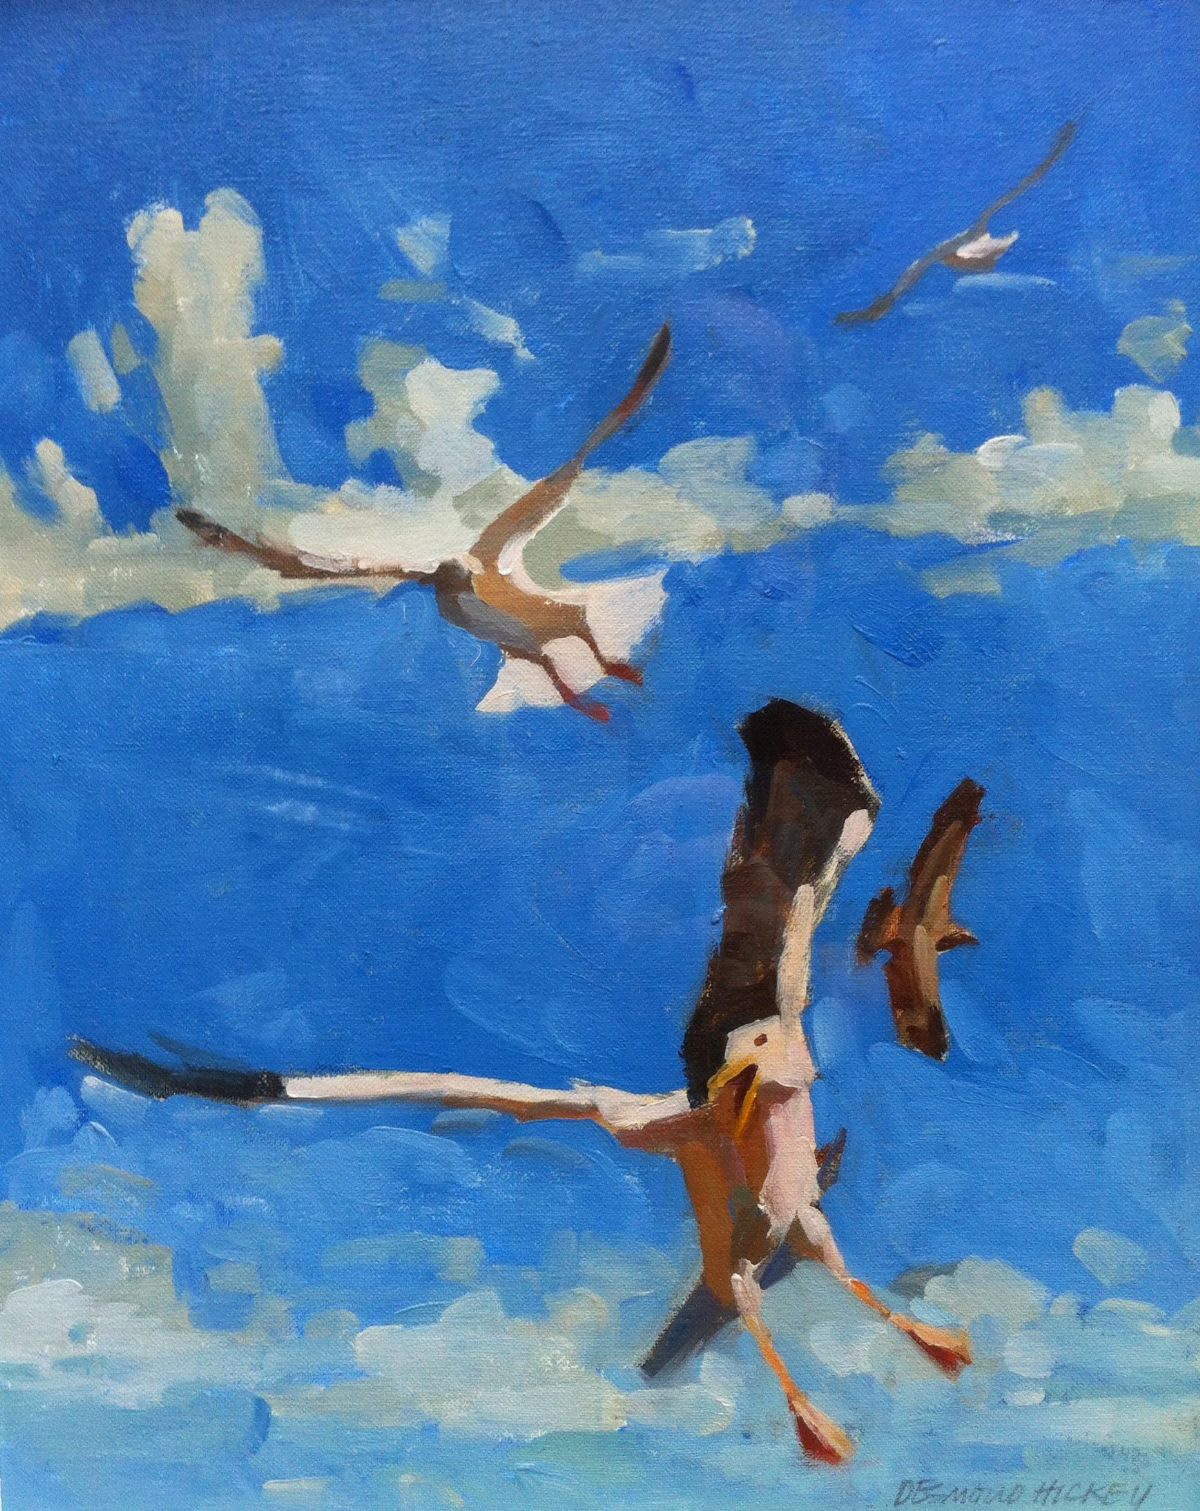 Seagulls Coming in for Scraps - Desmond Hickey